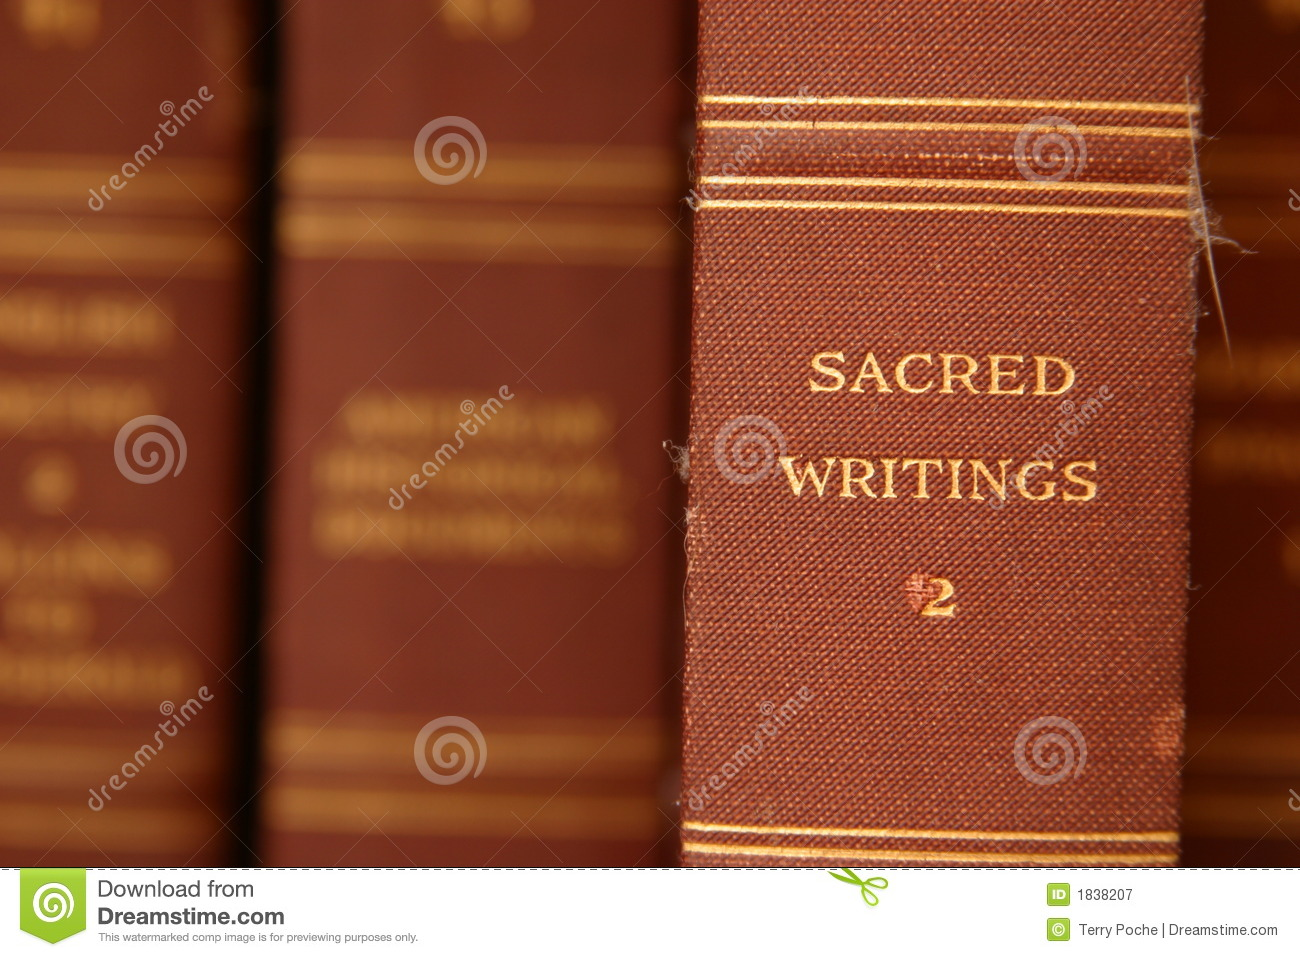 sacred writings Research into erasmus's political ideas, notably his pacifism, should not be based on sources like institutio principis christiani, querela pacis,.